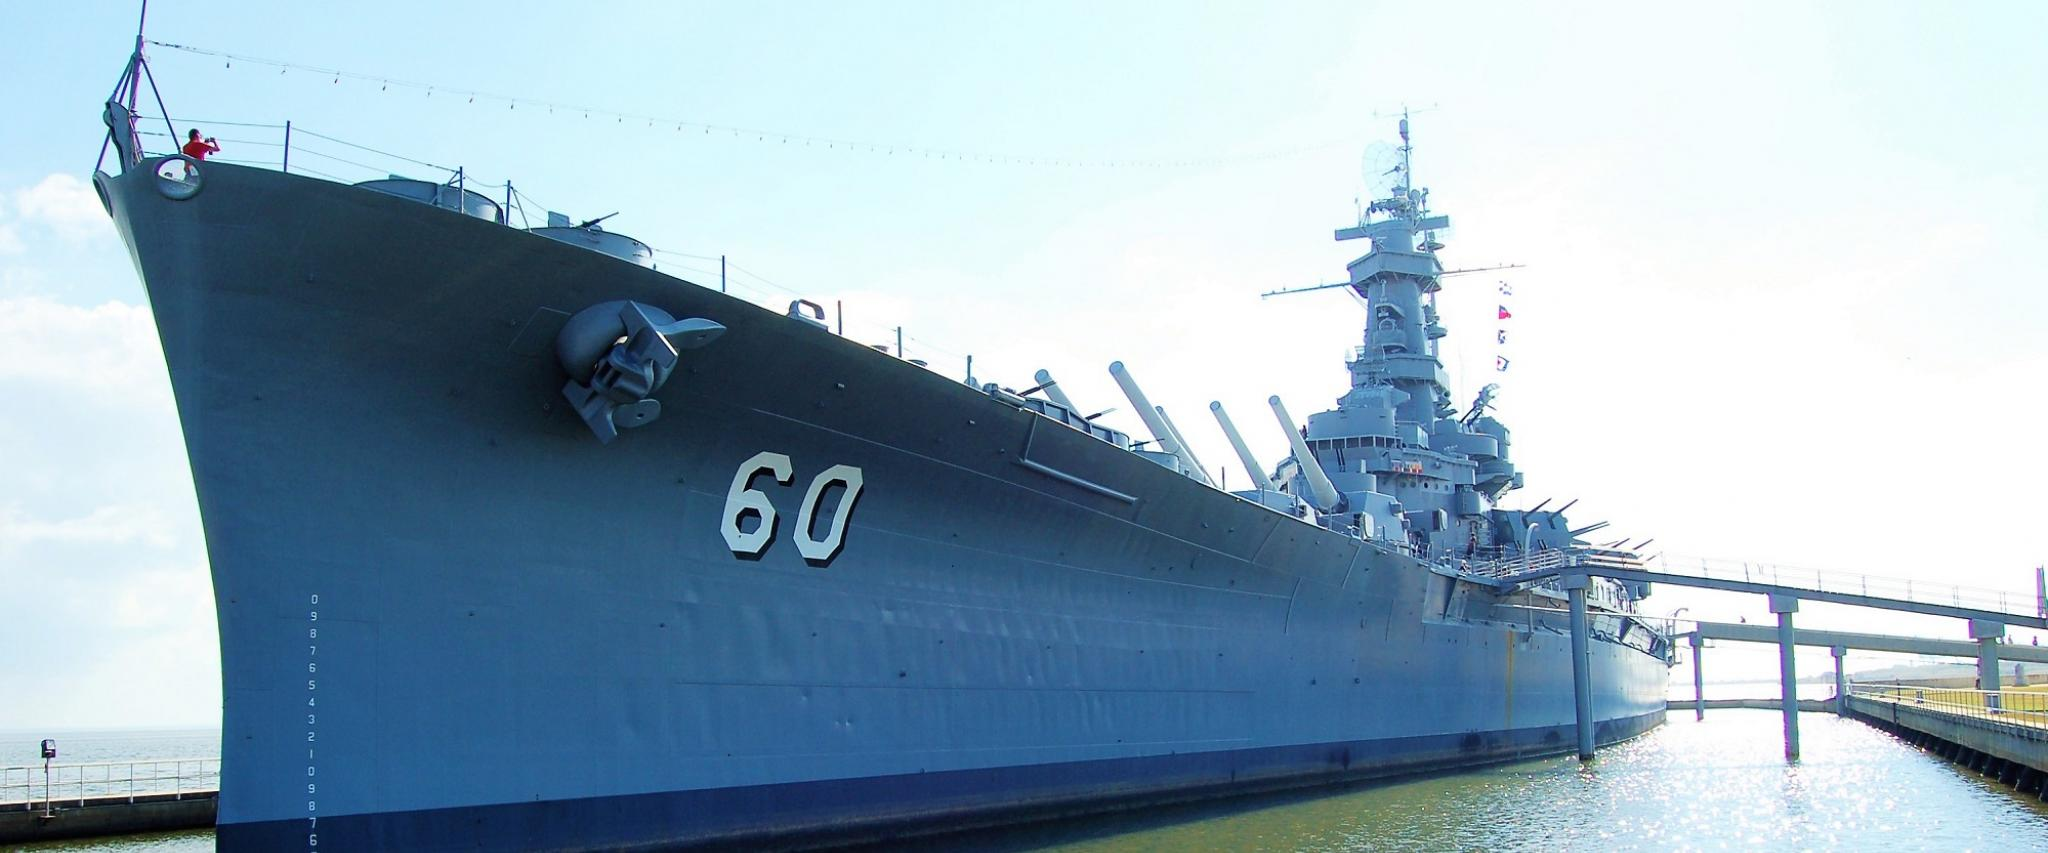 U.S.S Alabama Battleship